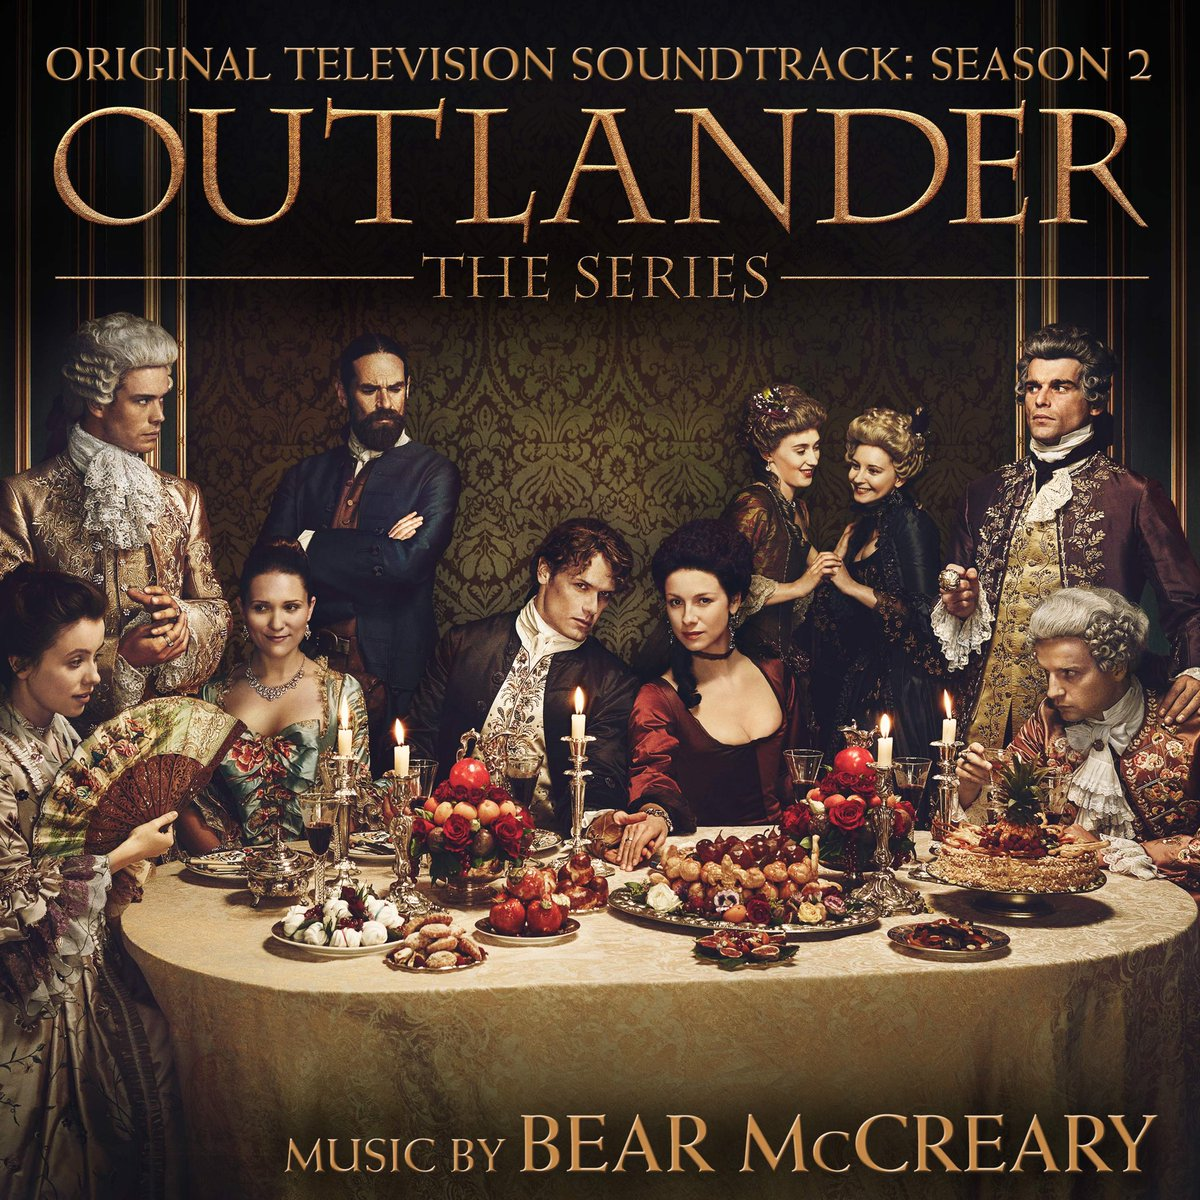 Image Source: @BearMcCreary